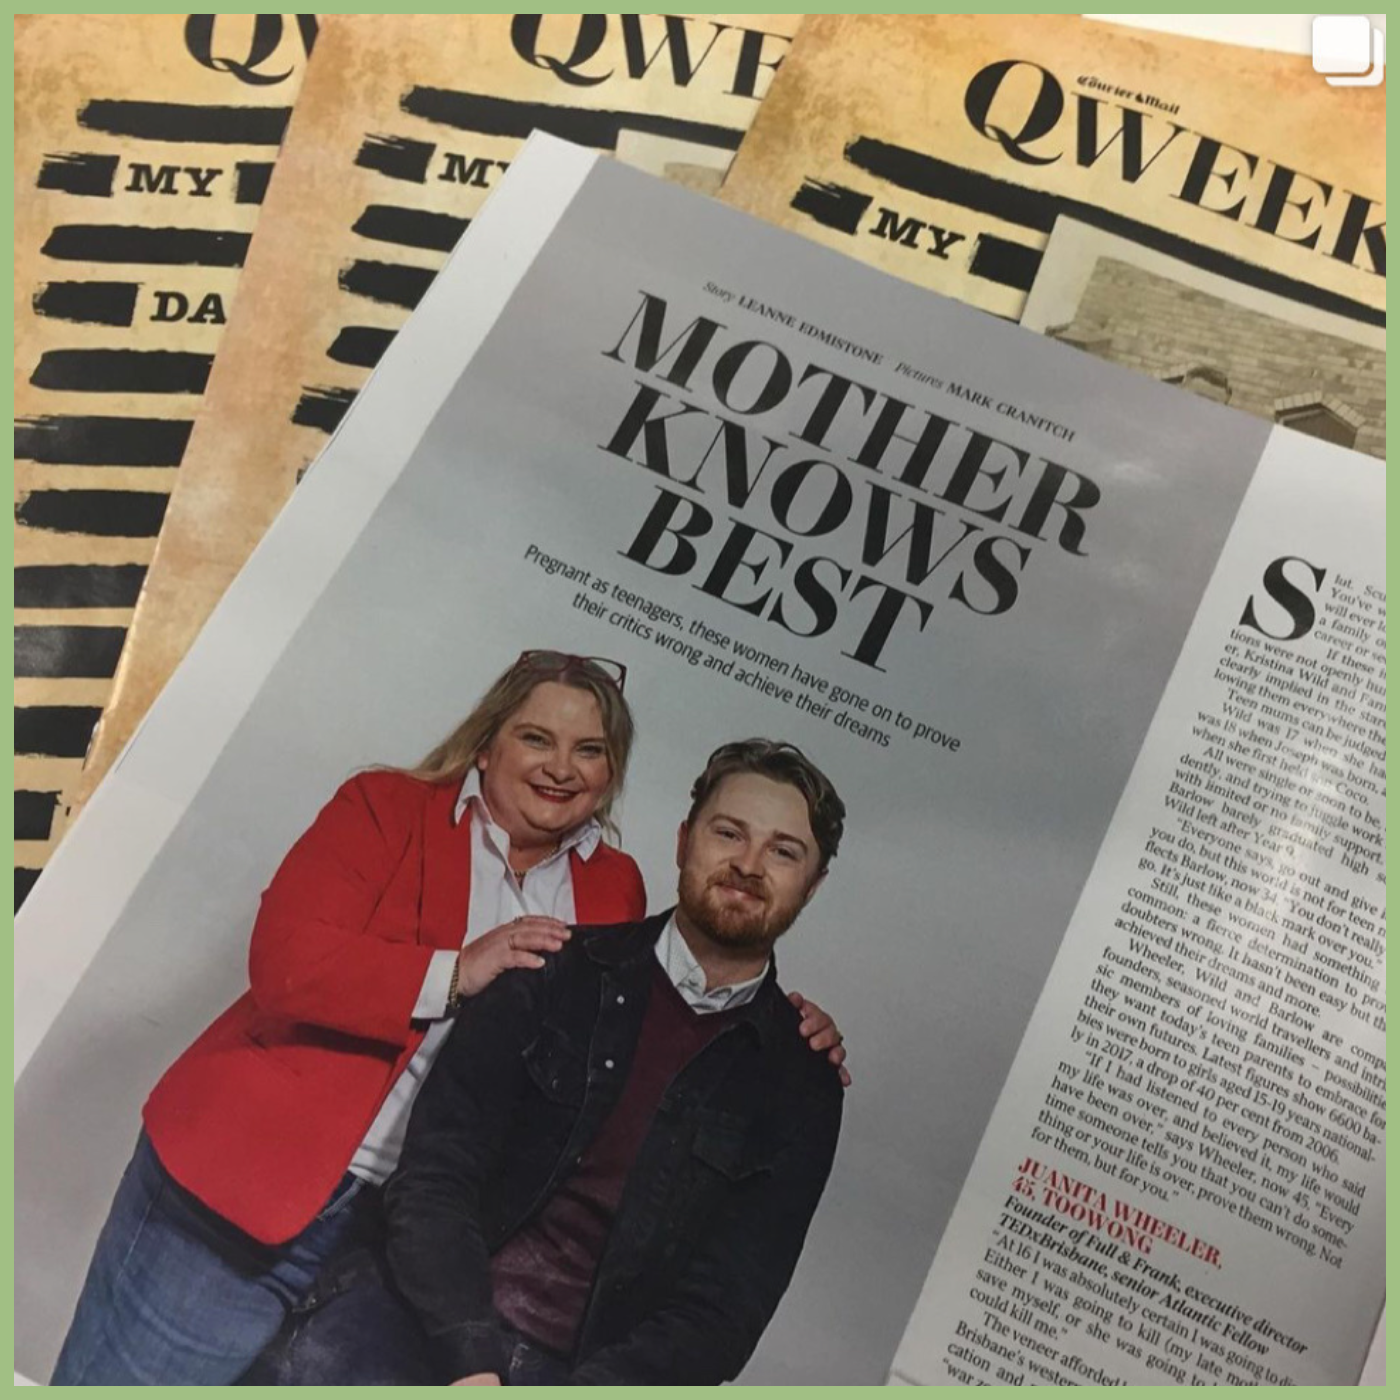 mother and son on a cover of a newsletter